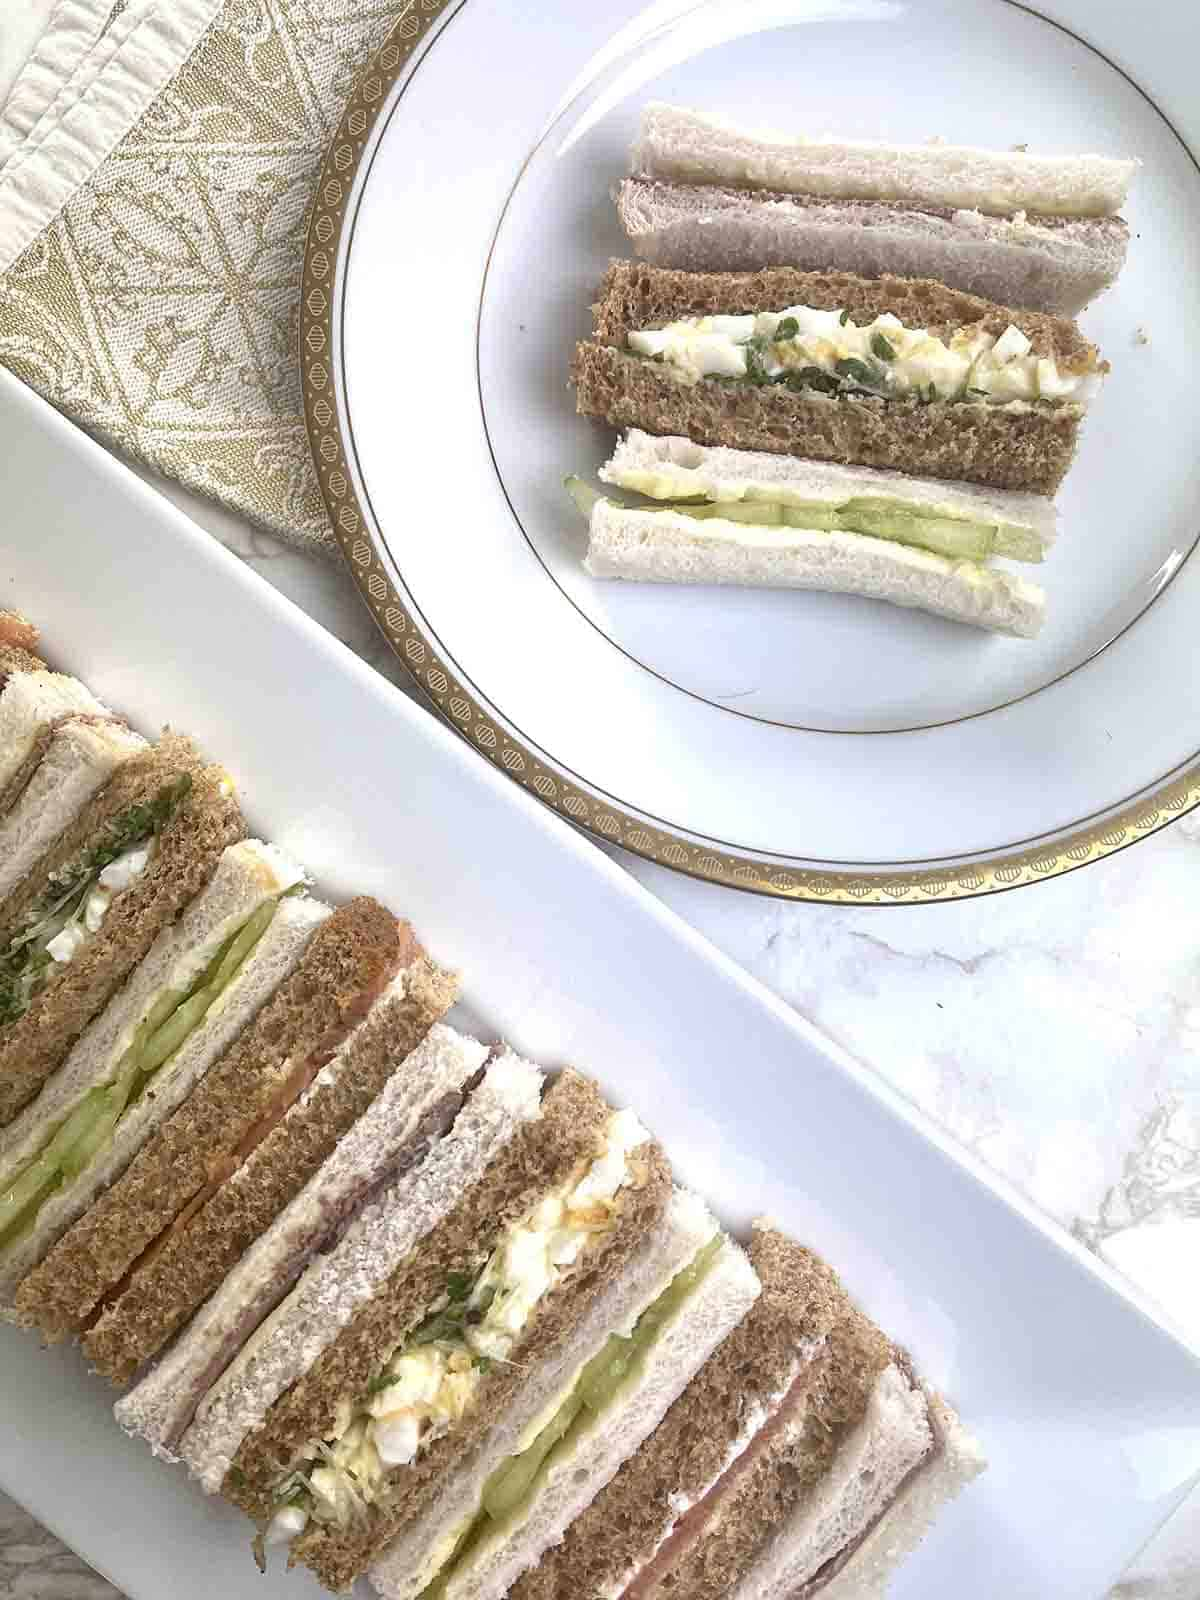 afternoon tea sandwiches on a plate.